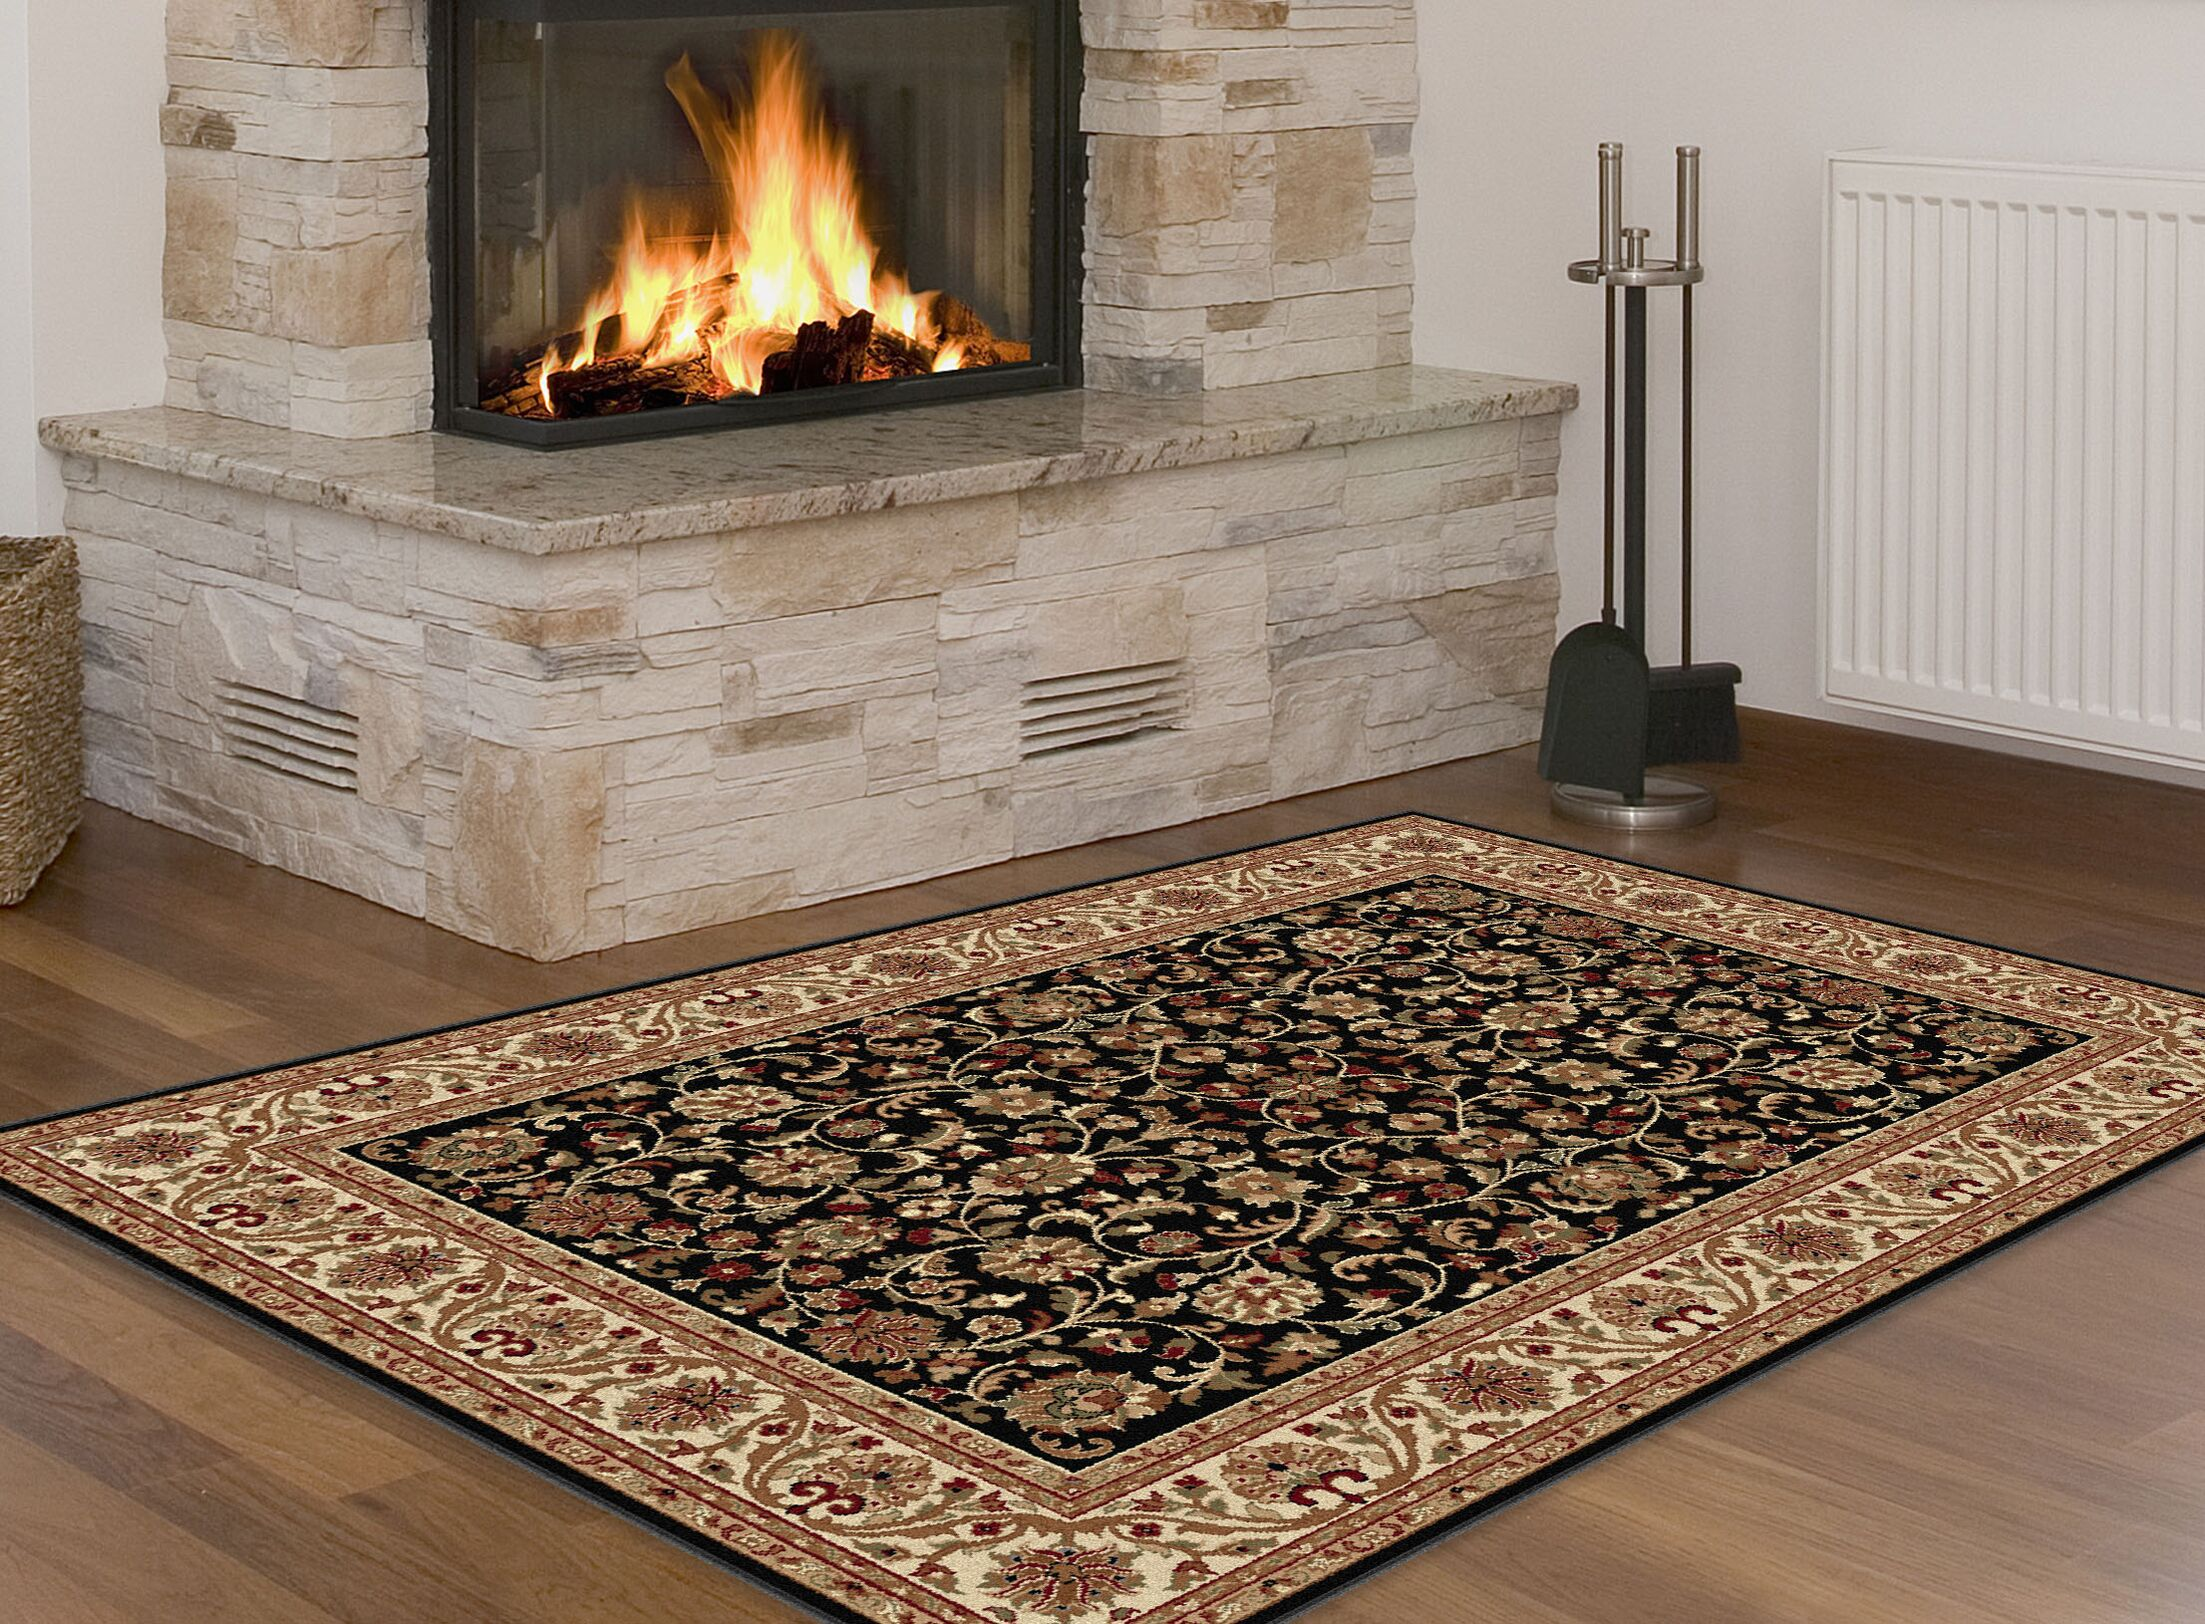 Clarence Black/Brown Area Rug Rug Size: 8'9'' x 12'3''